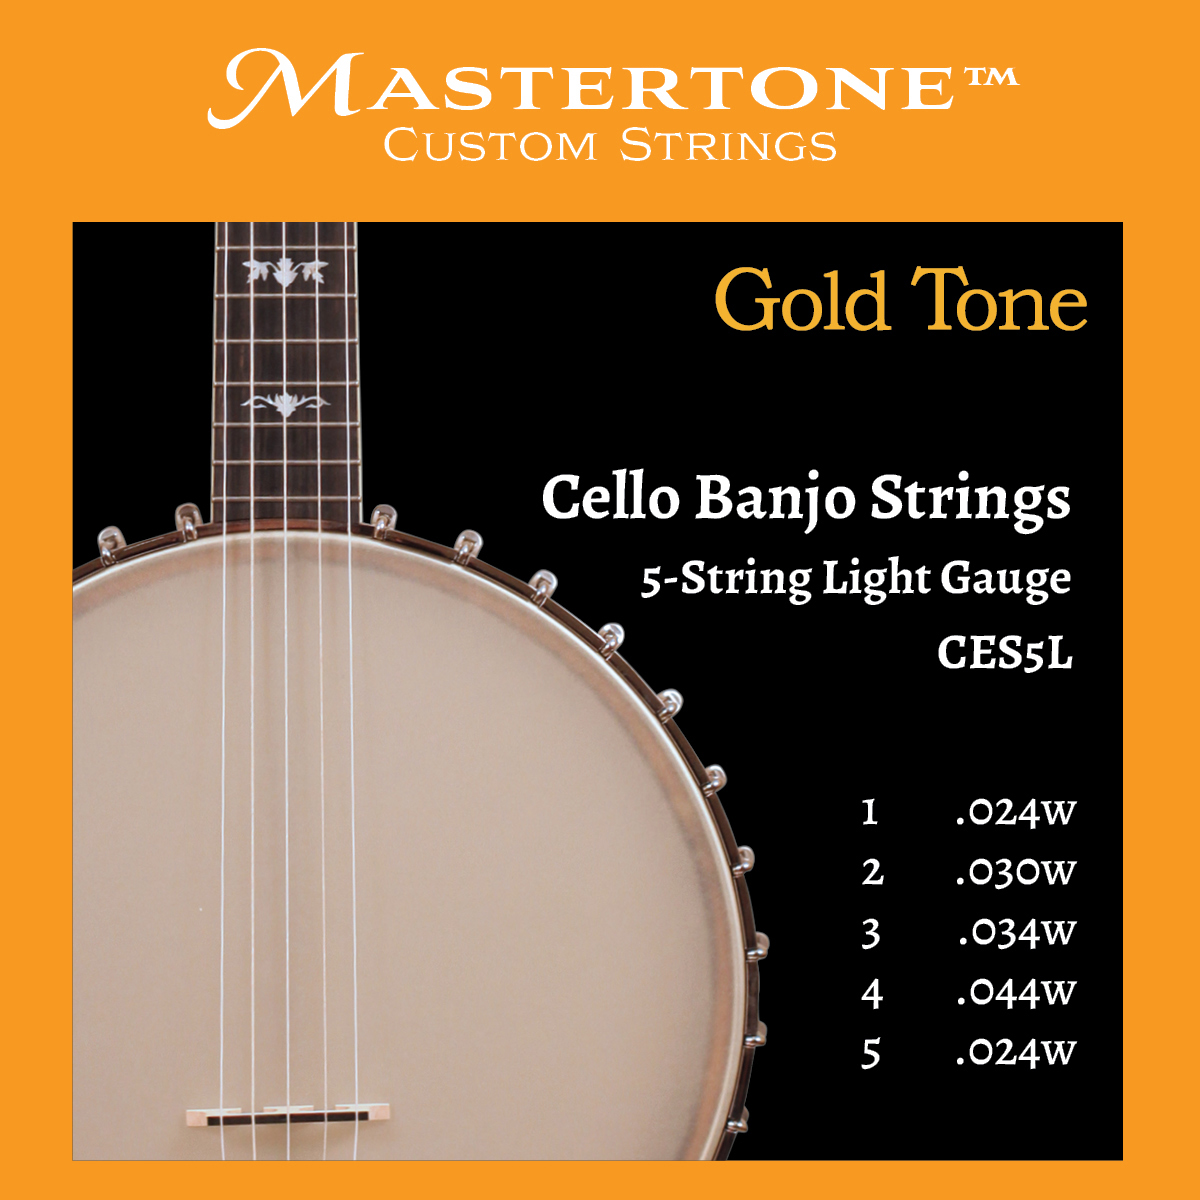 Banjo Cello 5-String Light Gauge Strings